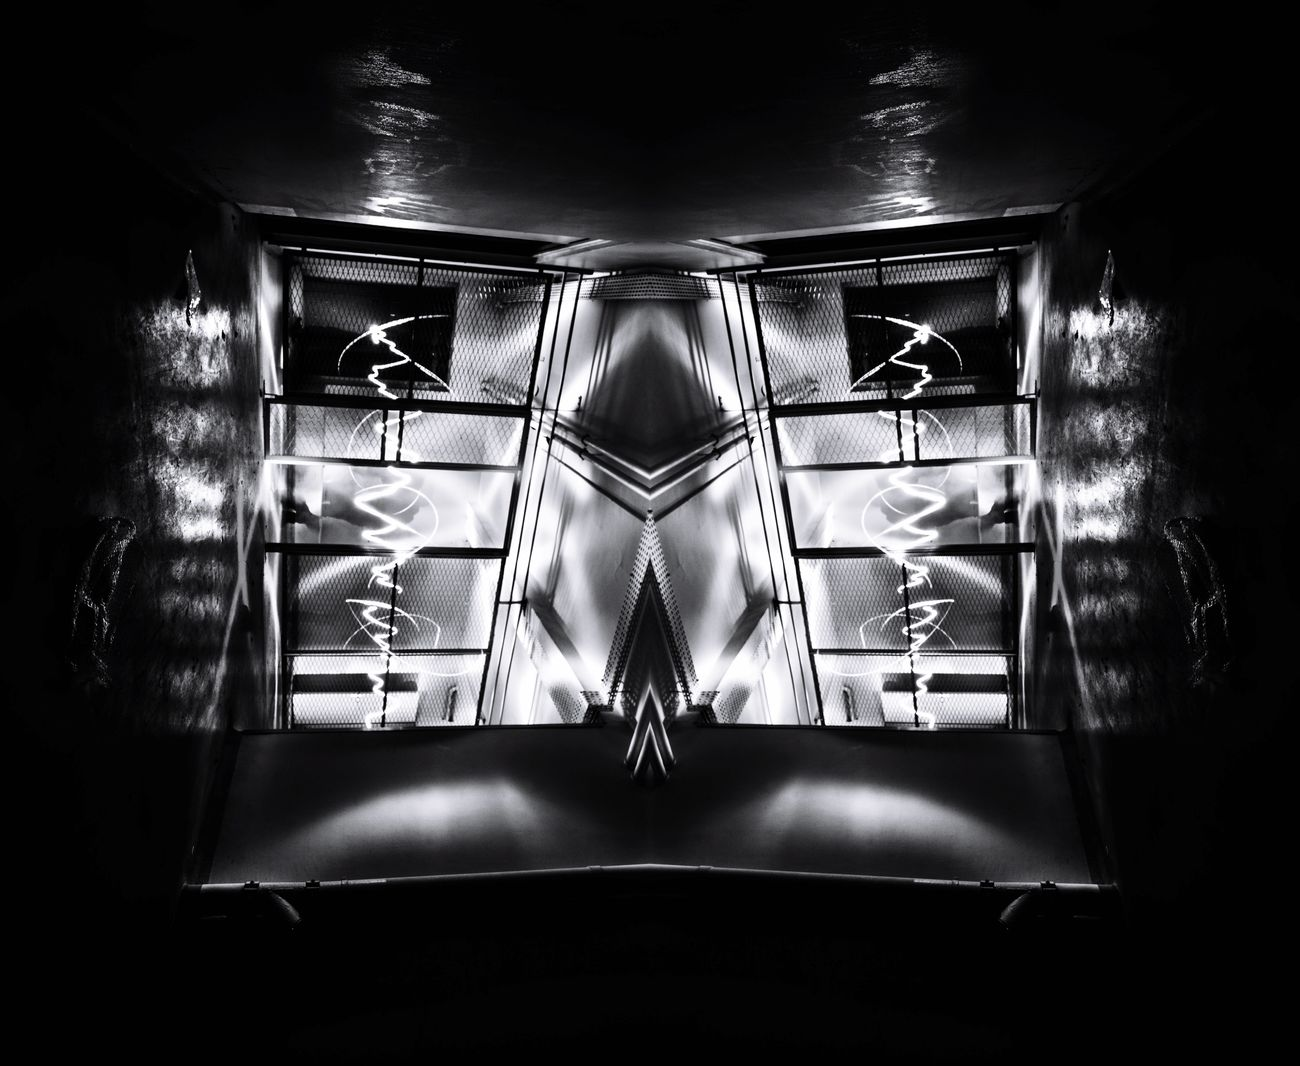 The prisoner 2016 Light And Shadow Lightpainting Symmetry Blackandwhite Blackandwhite Photography Symmetrical Urbex Urbexexplorer Exploring Black White Light Dark Darkness And Light Prison Jail Nikon Nikonphotography Wide Shot Sigma10-20 Sigma Photographylovers Photography Pics D7100